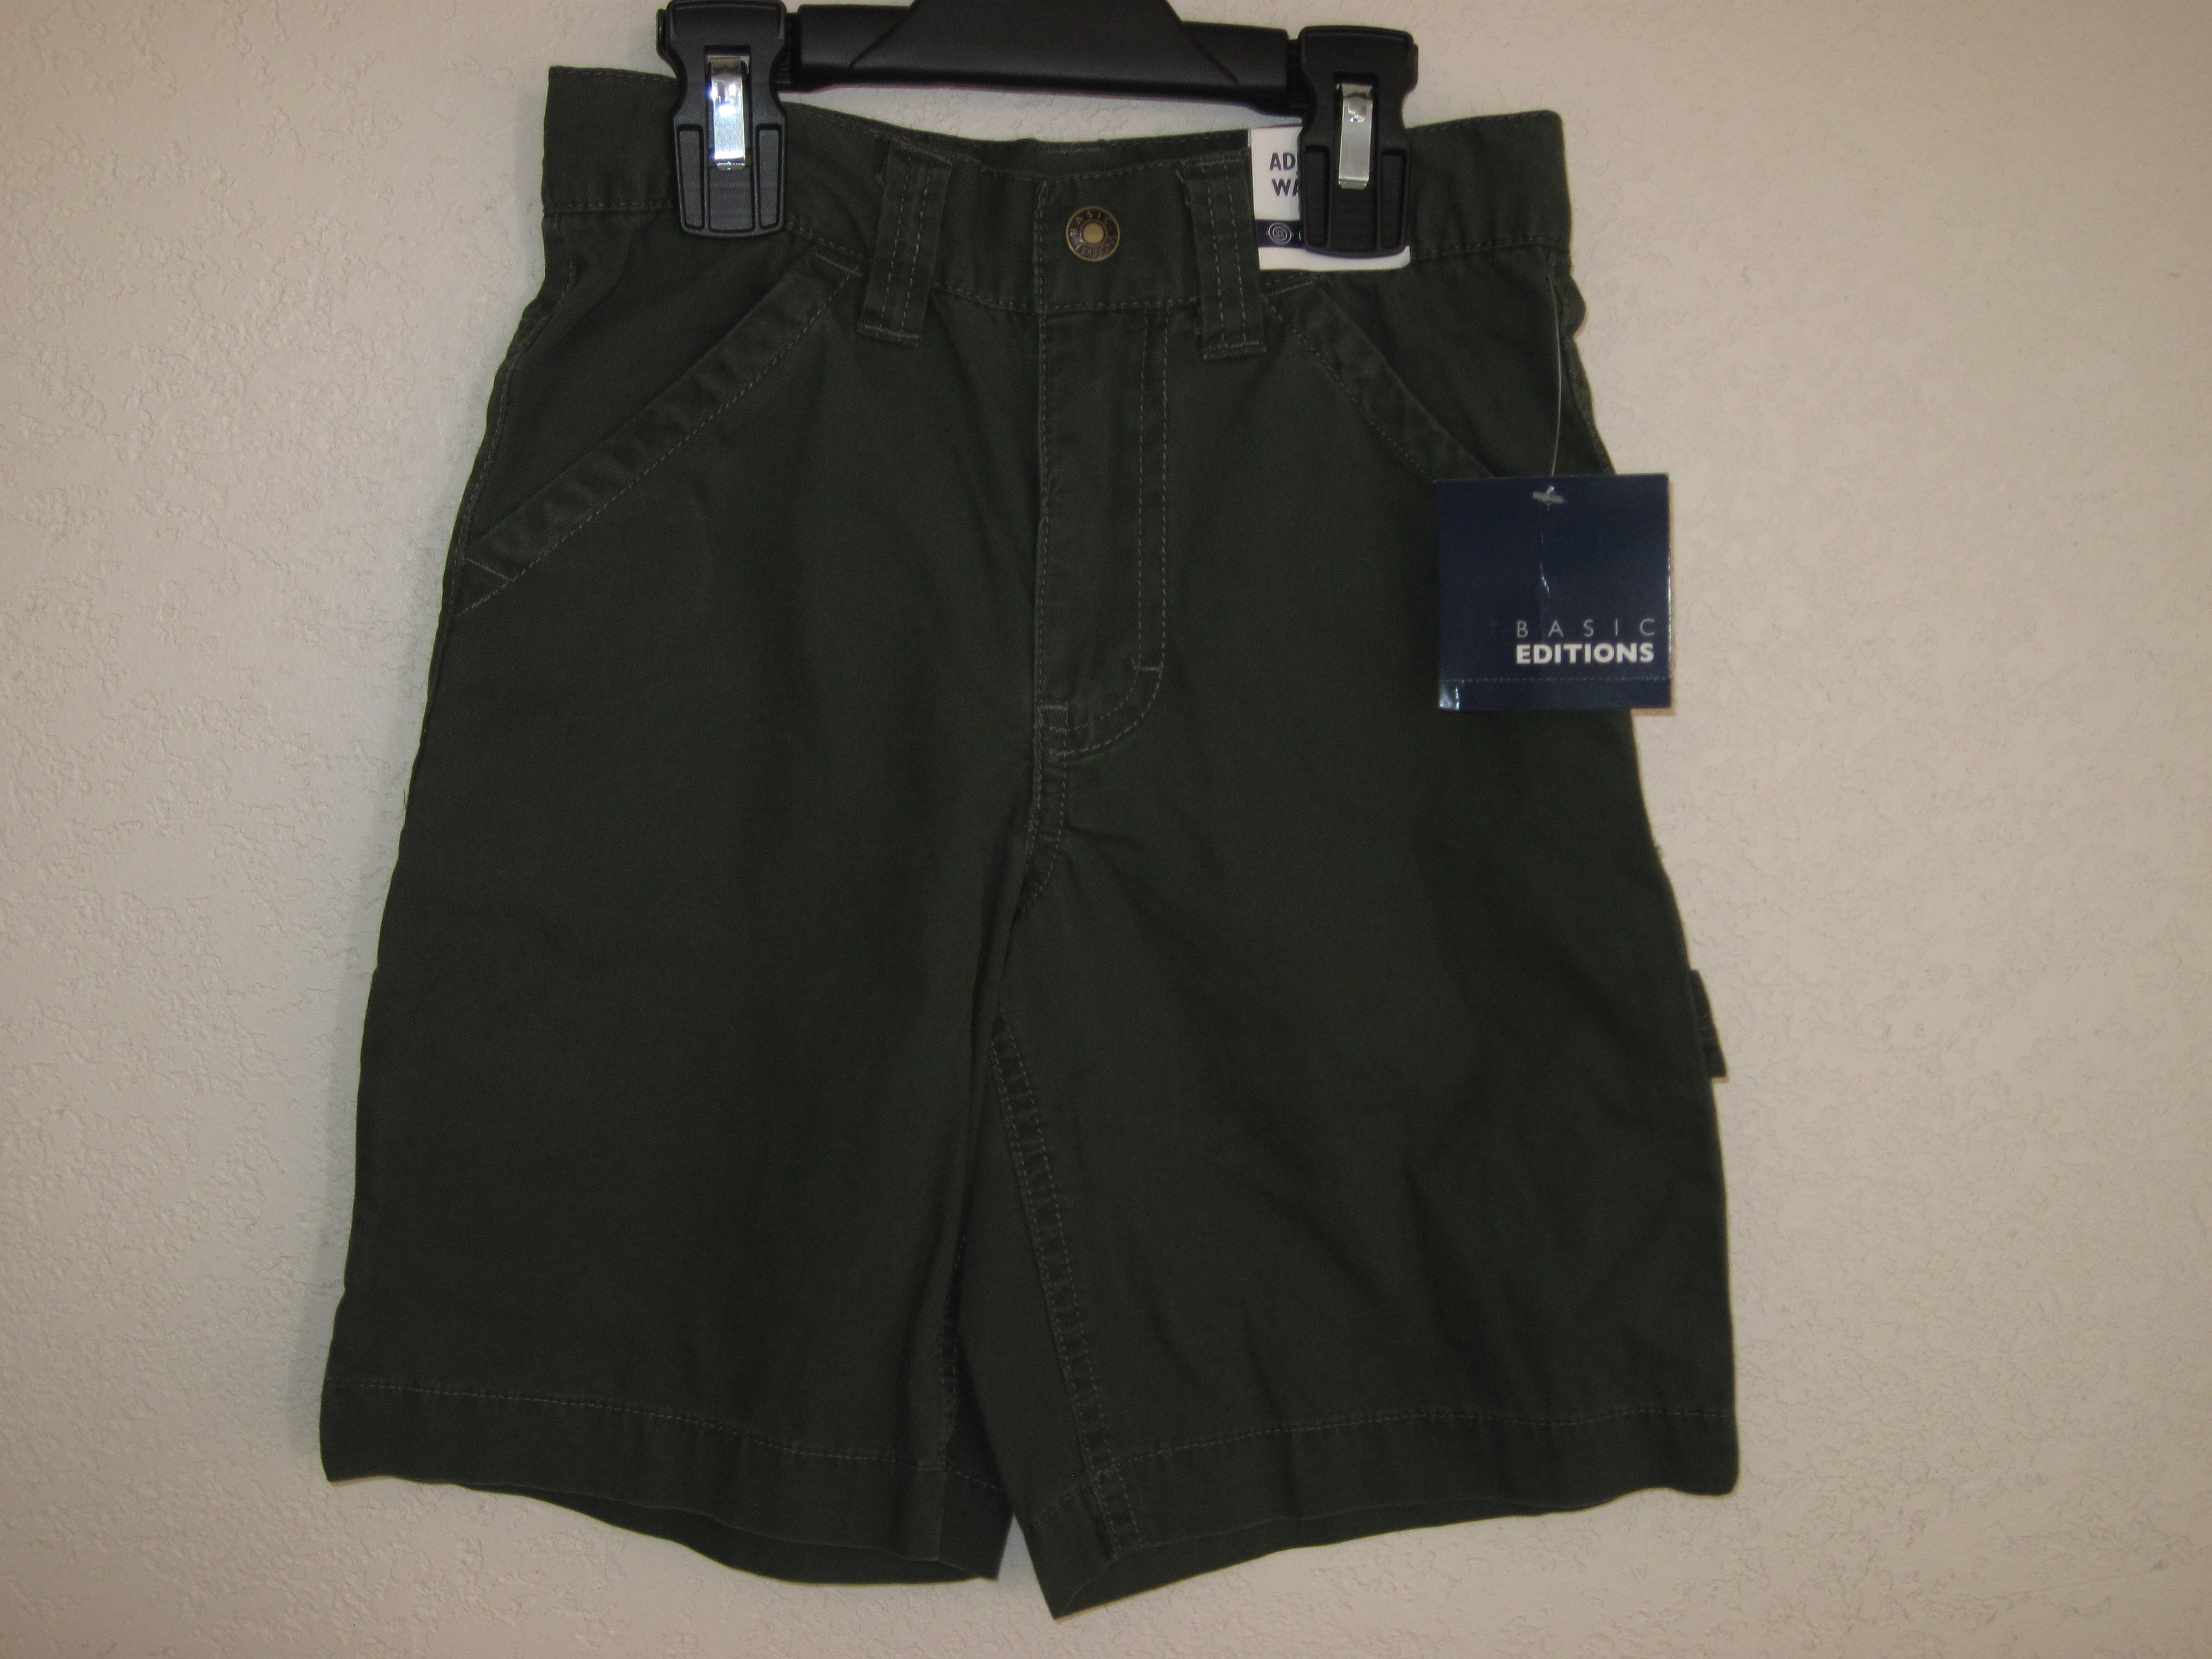 Basic Editions Sz 5 Carpenter Shorts (hunter green)